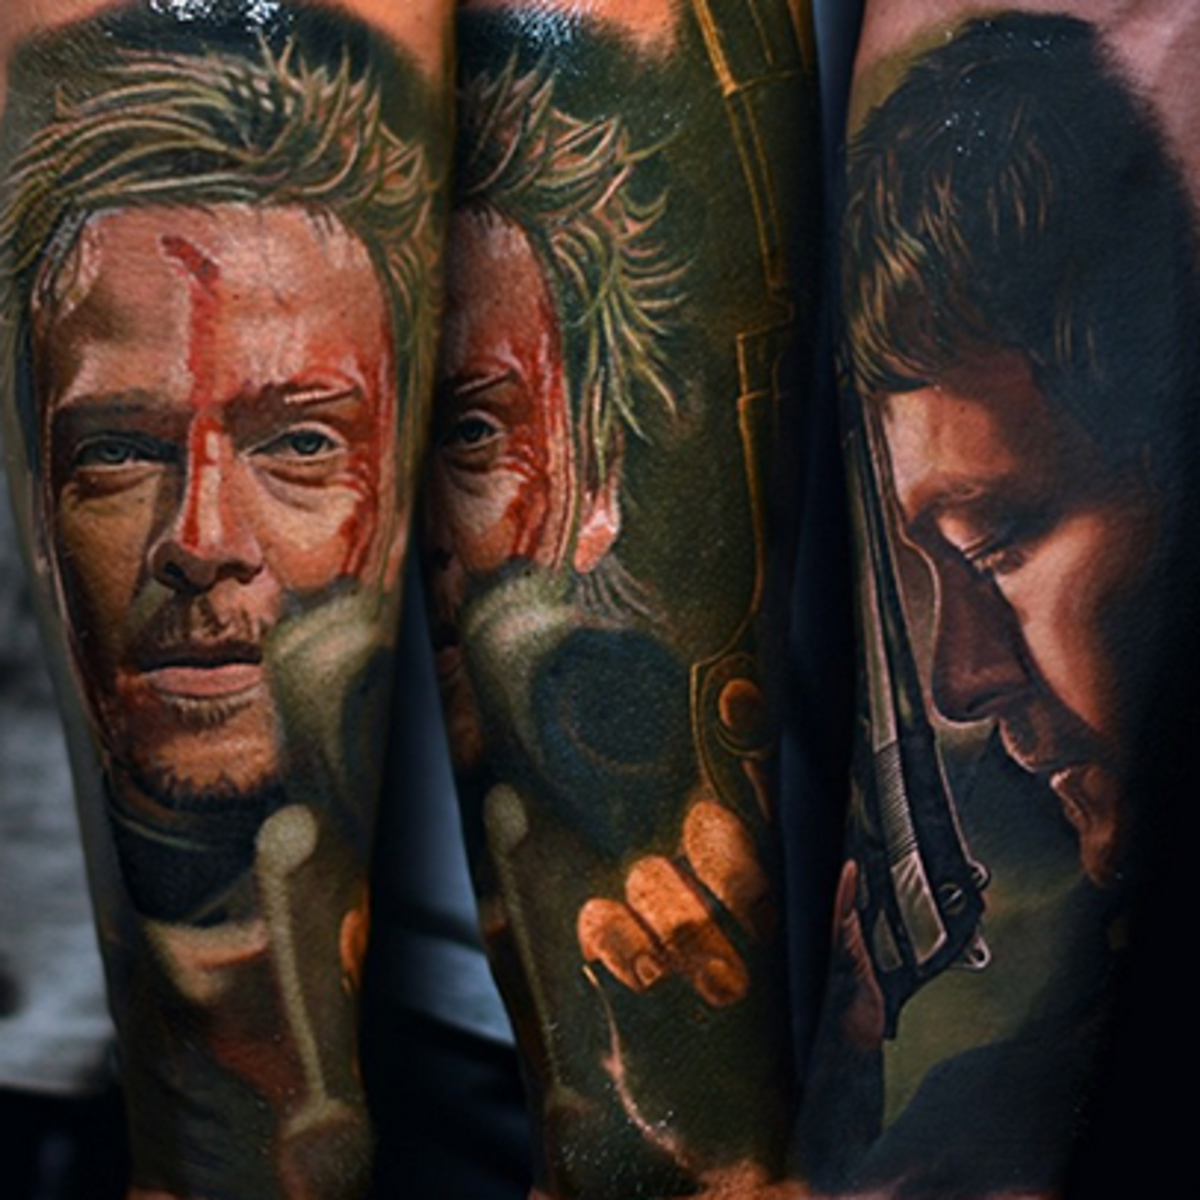 """Tattoo Ideas Artists And Models: """"The Boondock Saints"""" TV Show And Tattoos"""